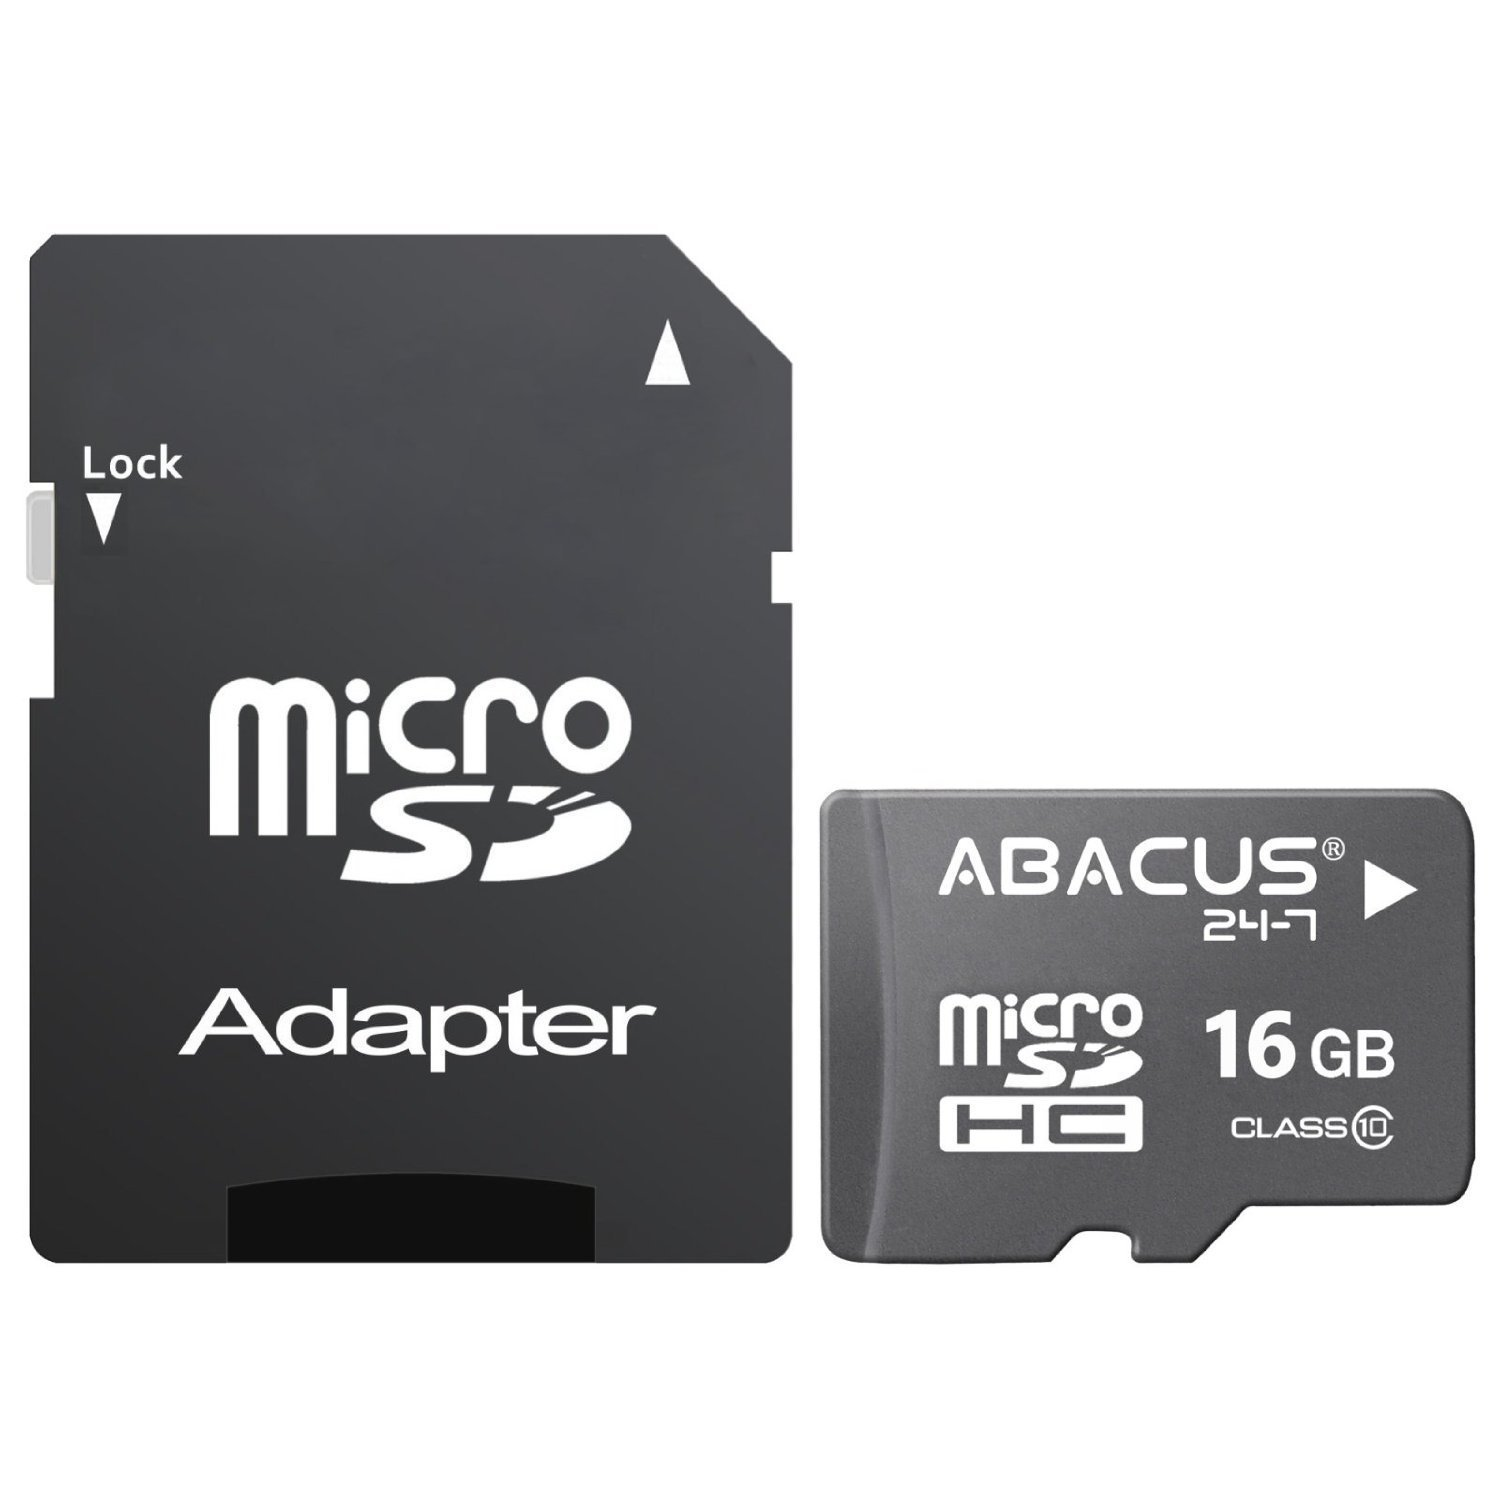 Abacus24-7 16GB micro SD Class 10 Memory Card [SD Adapter] for